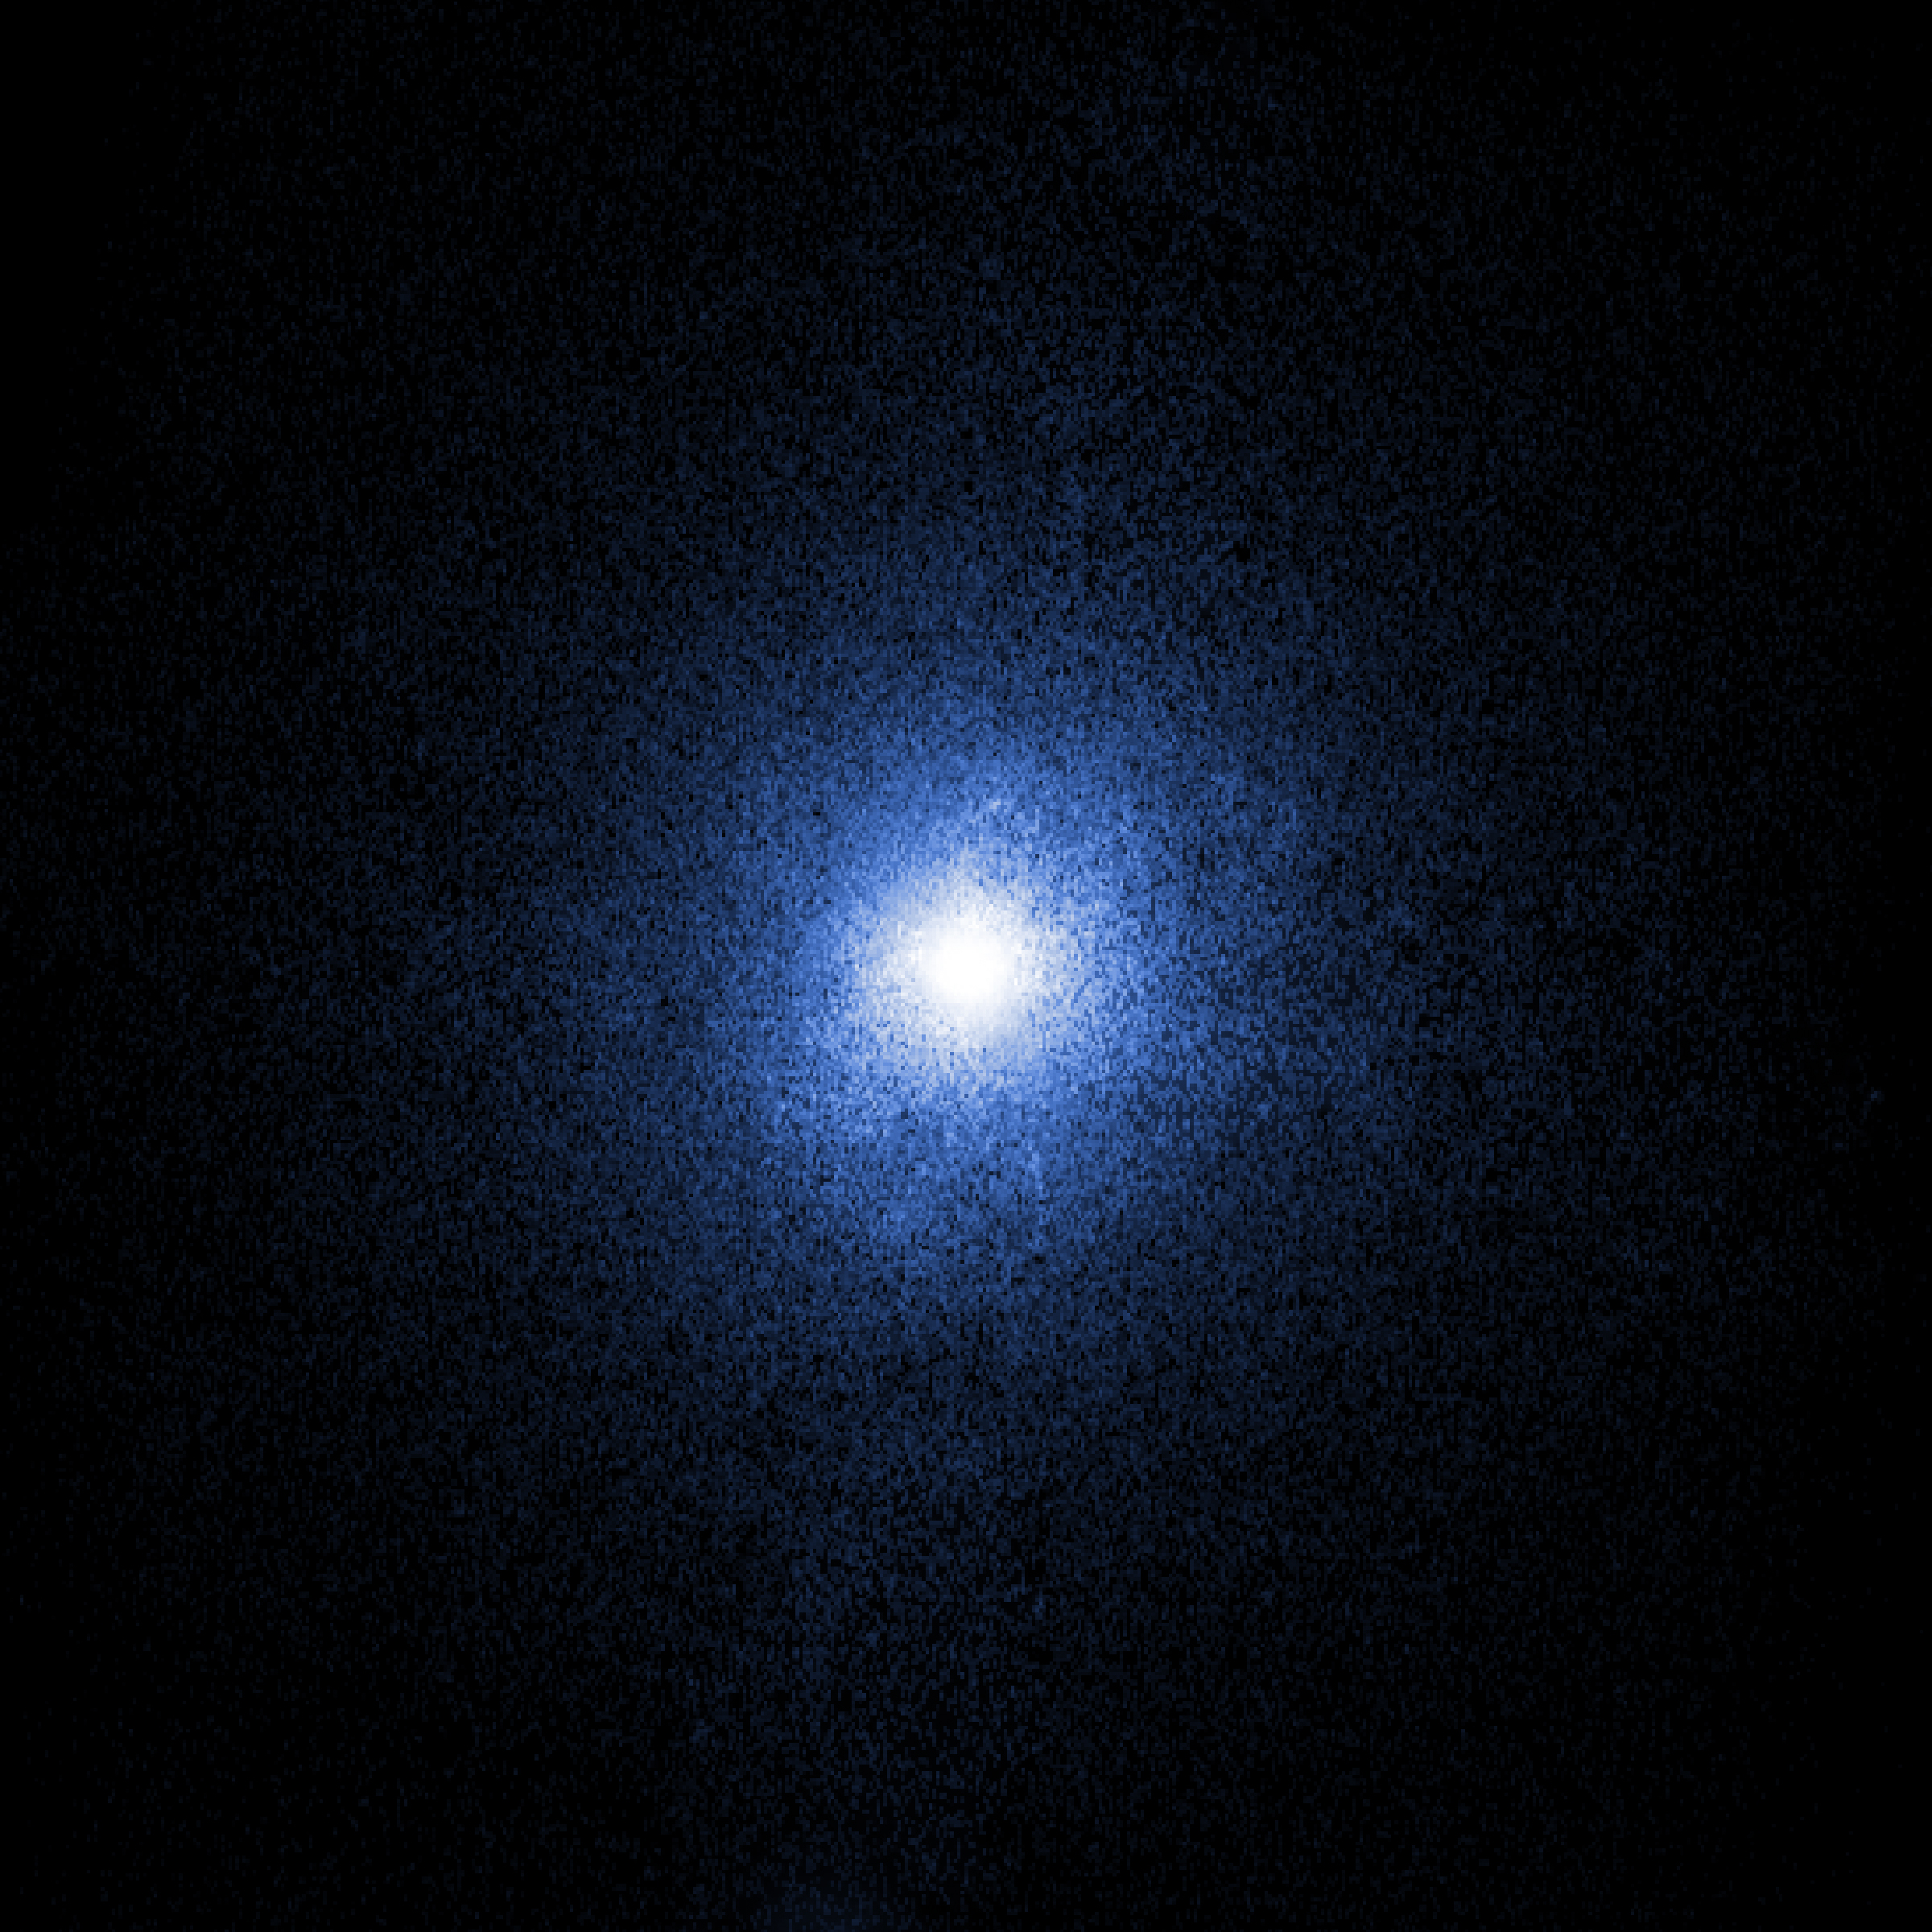 A  Chandra X-Ray Observatory image of  Cygnus X-1 , which was the first strong black hole candidate discovered. Credit: NASA's Chandra X-ray Observatory,NASA/CXC.